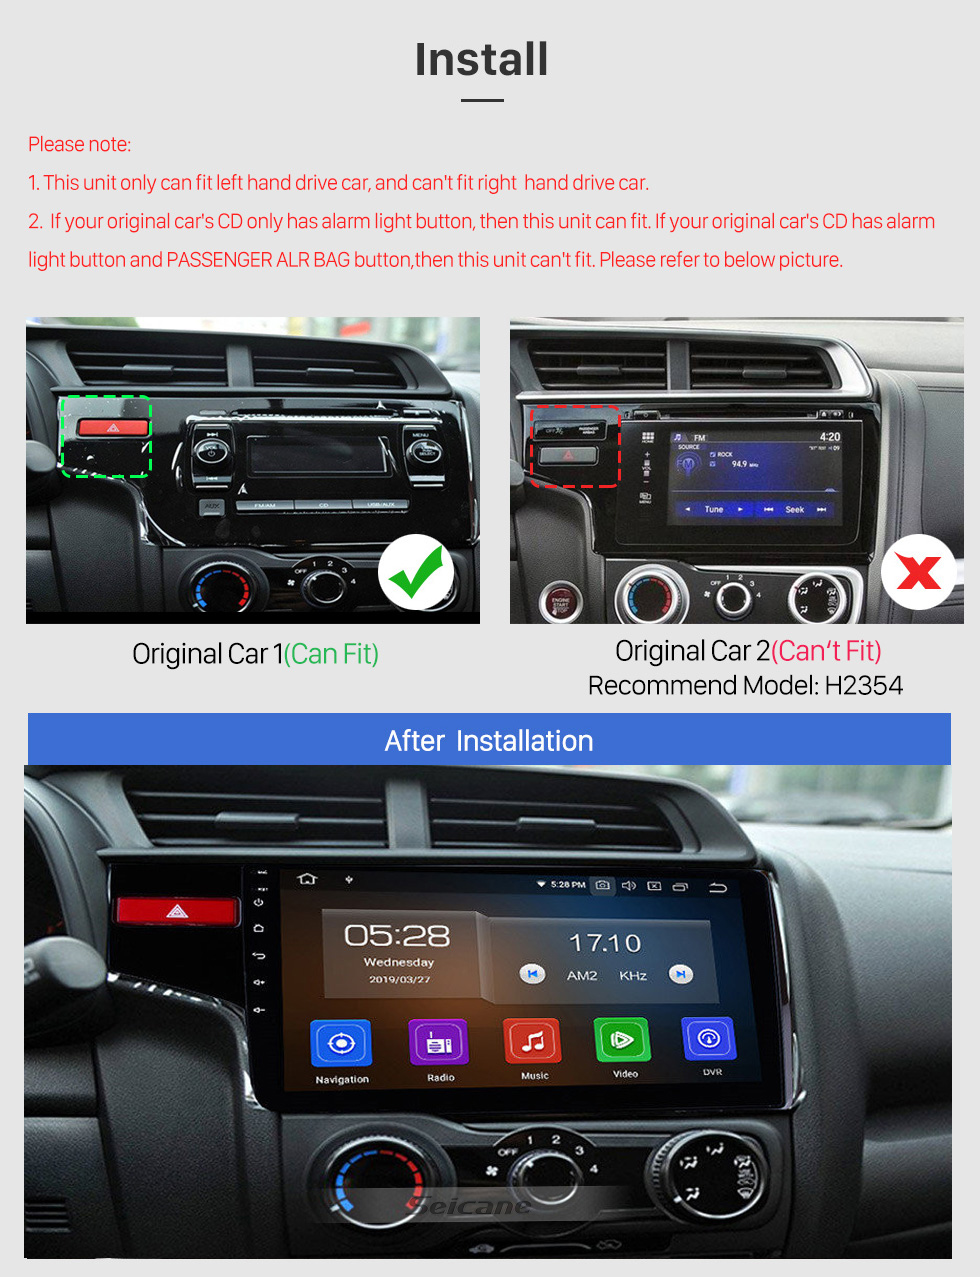 Seicane 10.1 inch 2014 2015 2016 HONDA FIT 1024*600 Touchscreen Android 10.0 Radio Bluetooth GPS Navigation System with Backup Camera 4G WIFI Mirror Link TPMS USB AUX Digital TV Steering Wheel Control